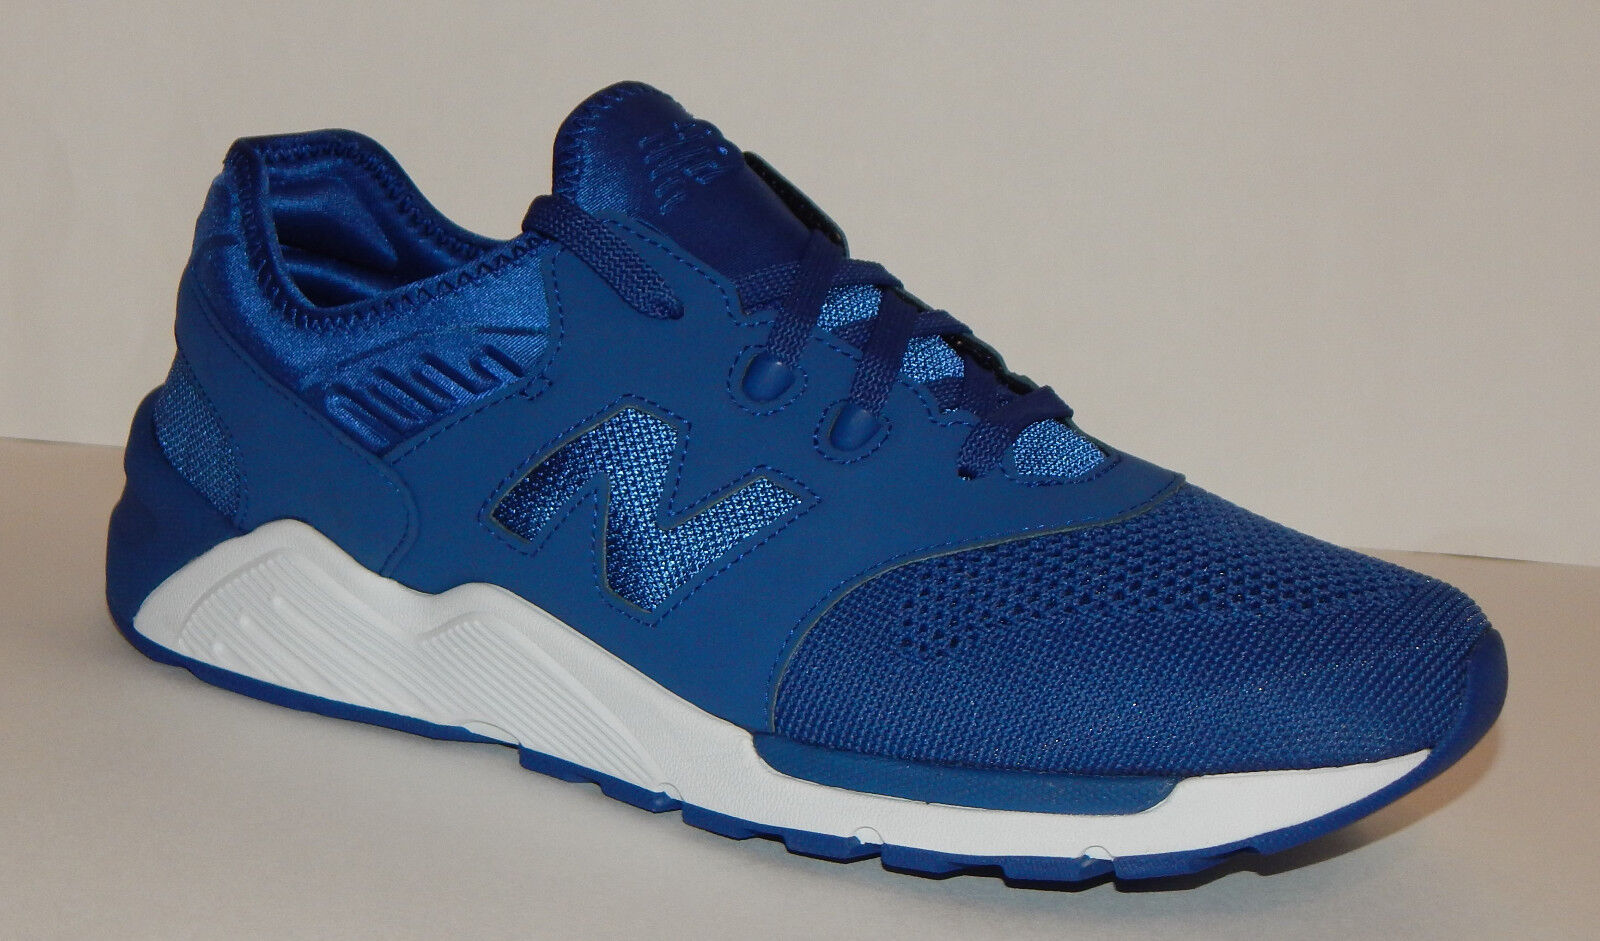 Men's New Balance 009 Lifestyle shoes ML009DMC NEW Retro bluee Sizes 11 & 13